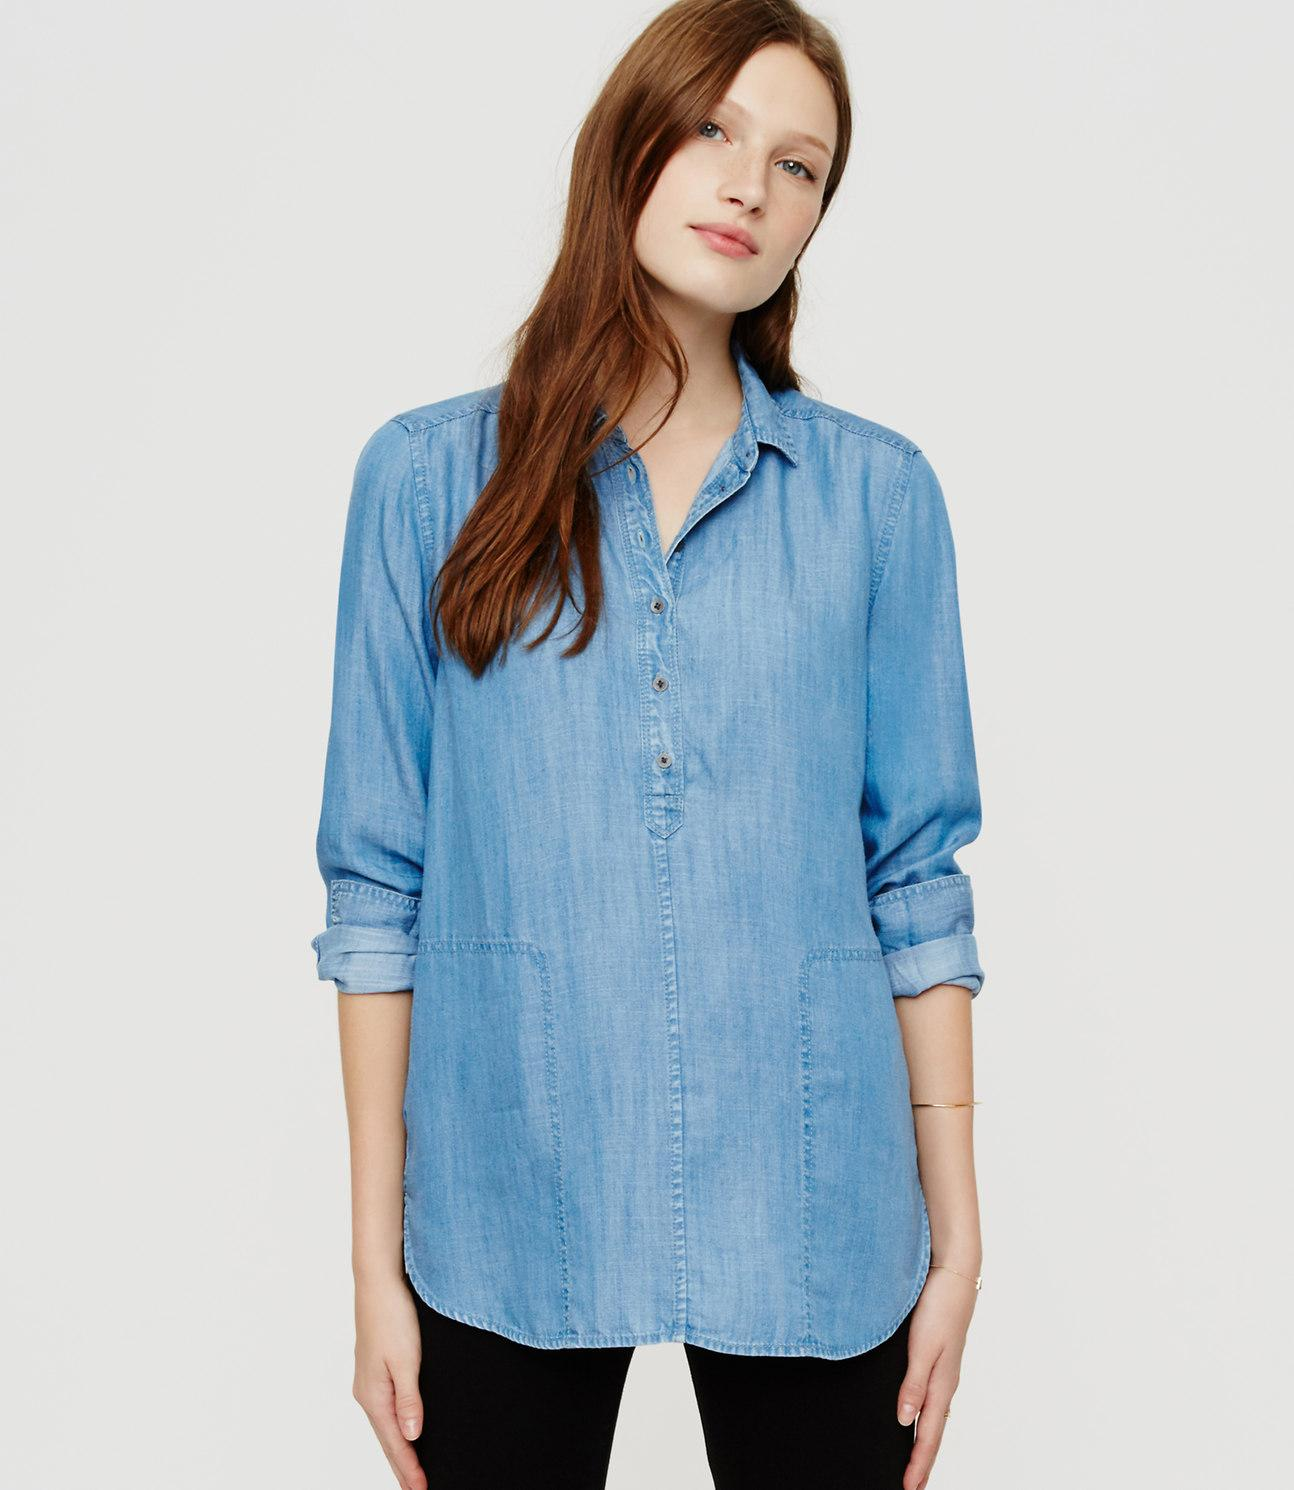 821ae44d Lou & Grey Chambray Henley Pocket Tunic in Blue - Lyst